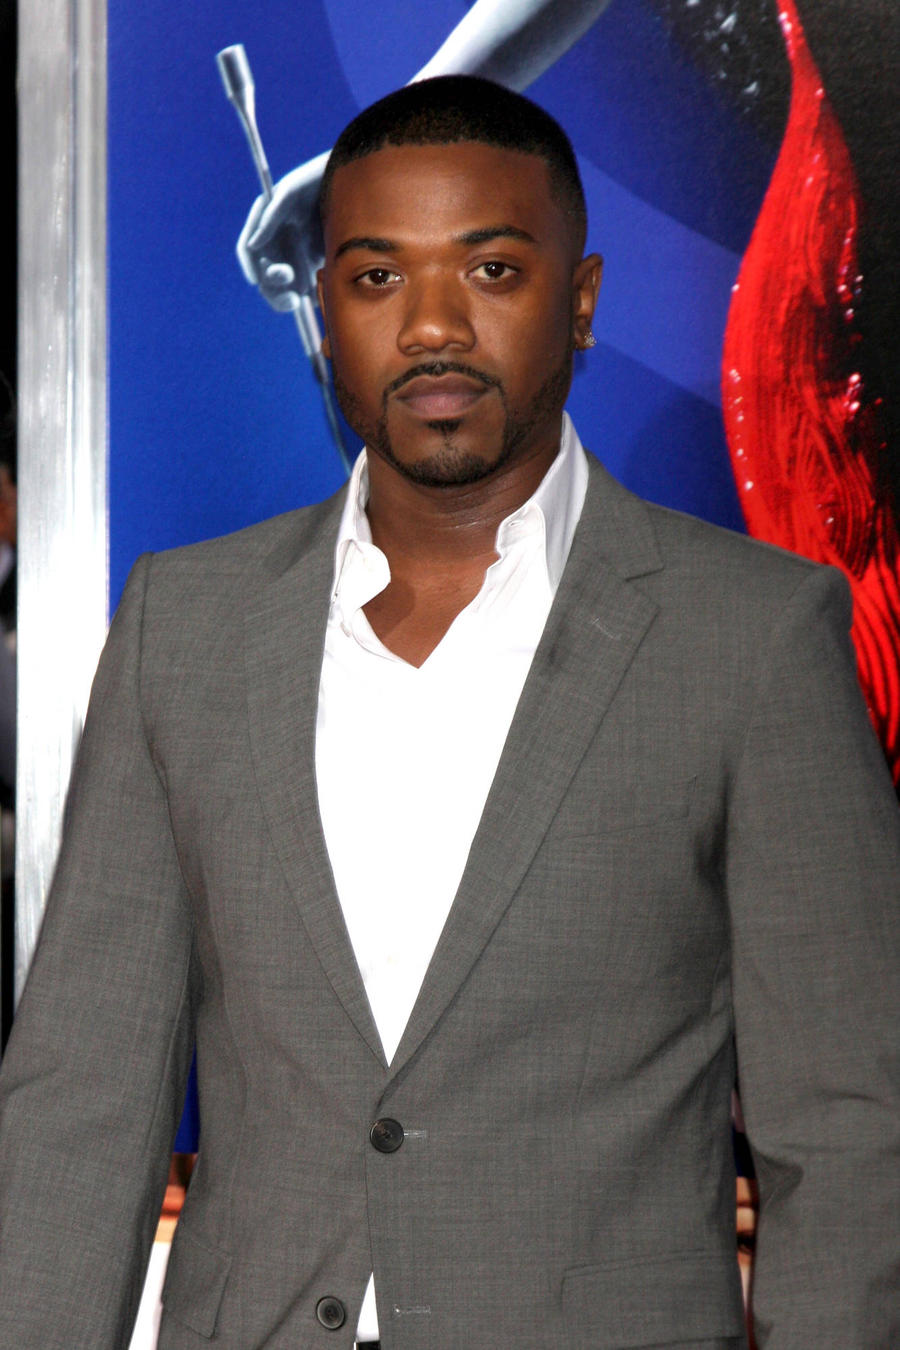 Ray J Condemns Authorities For Chris Brown's Arrest